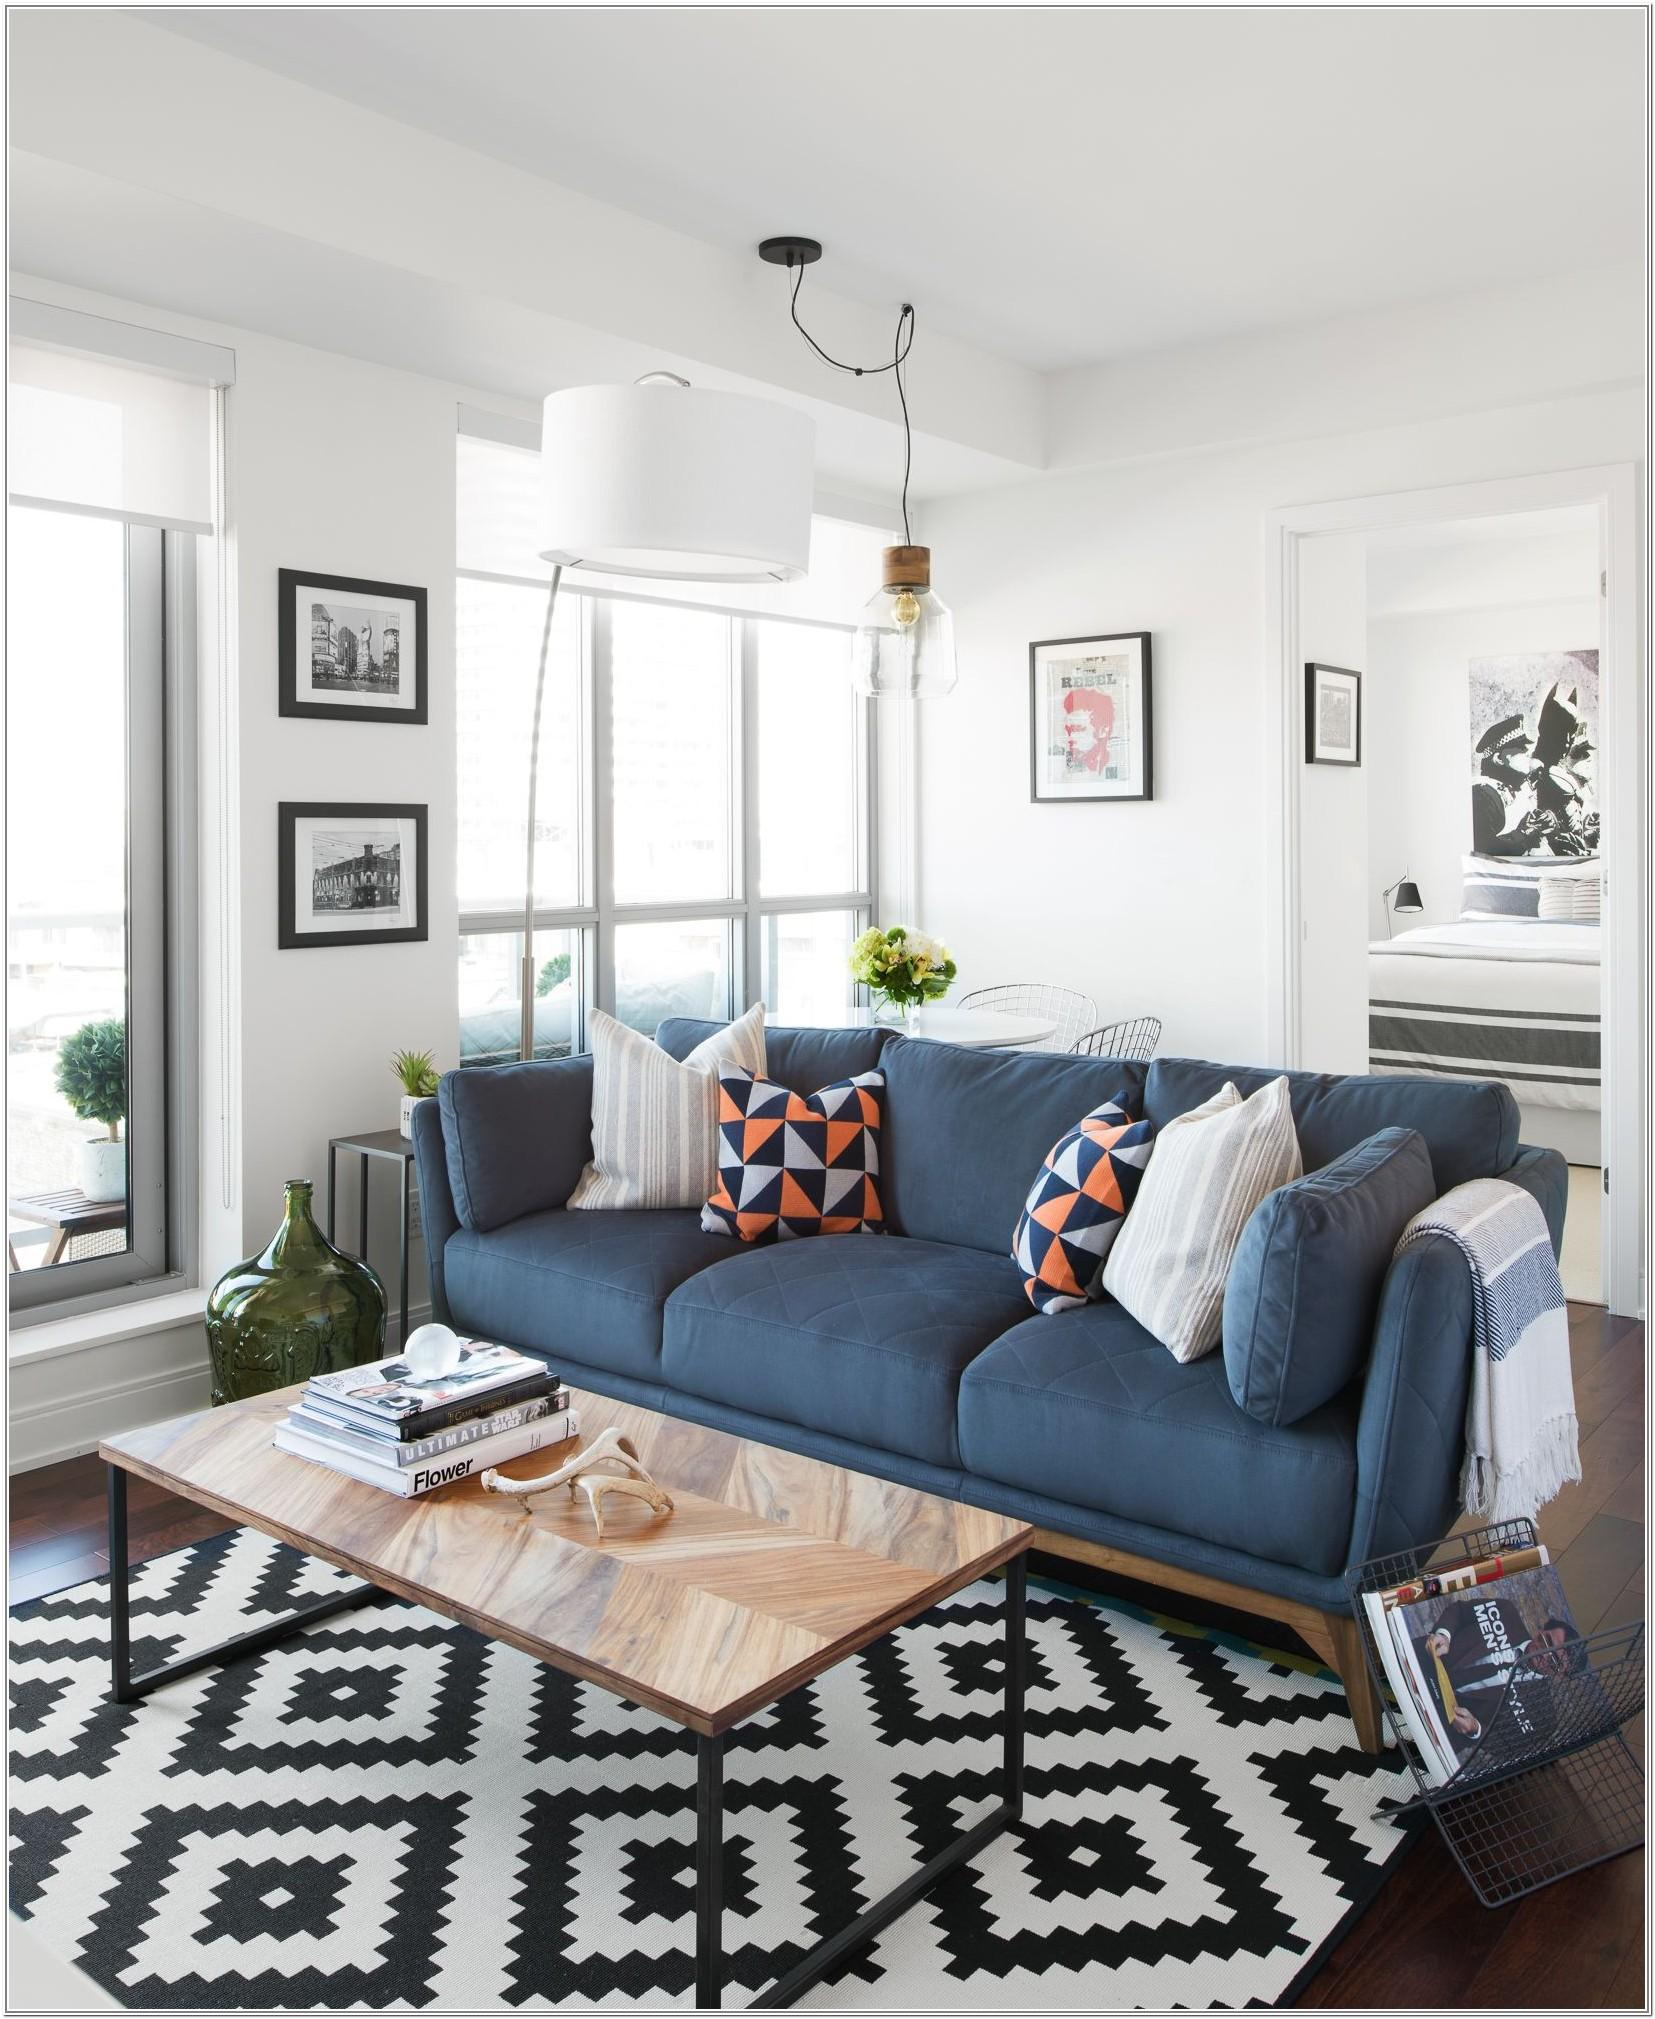 Ikea Living Room Interior Ideas California